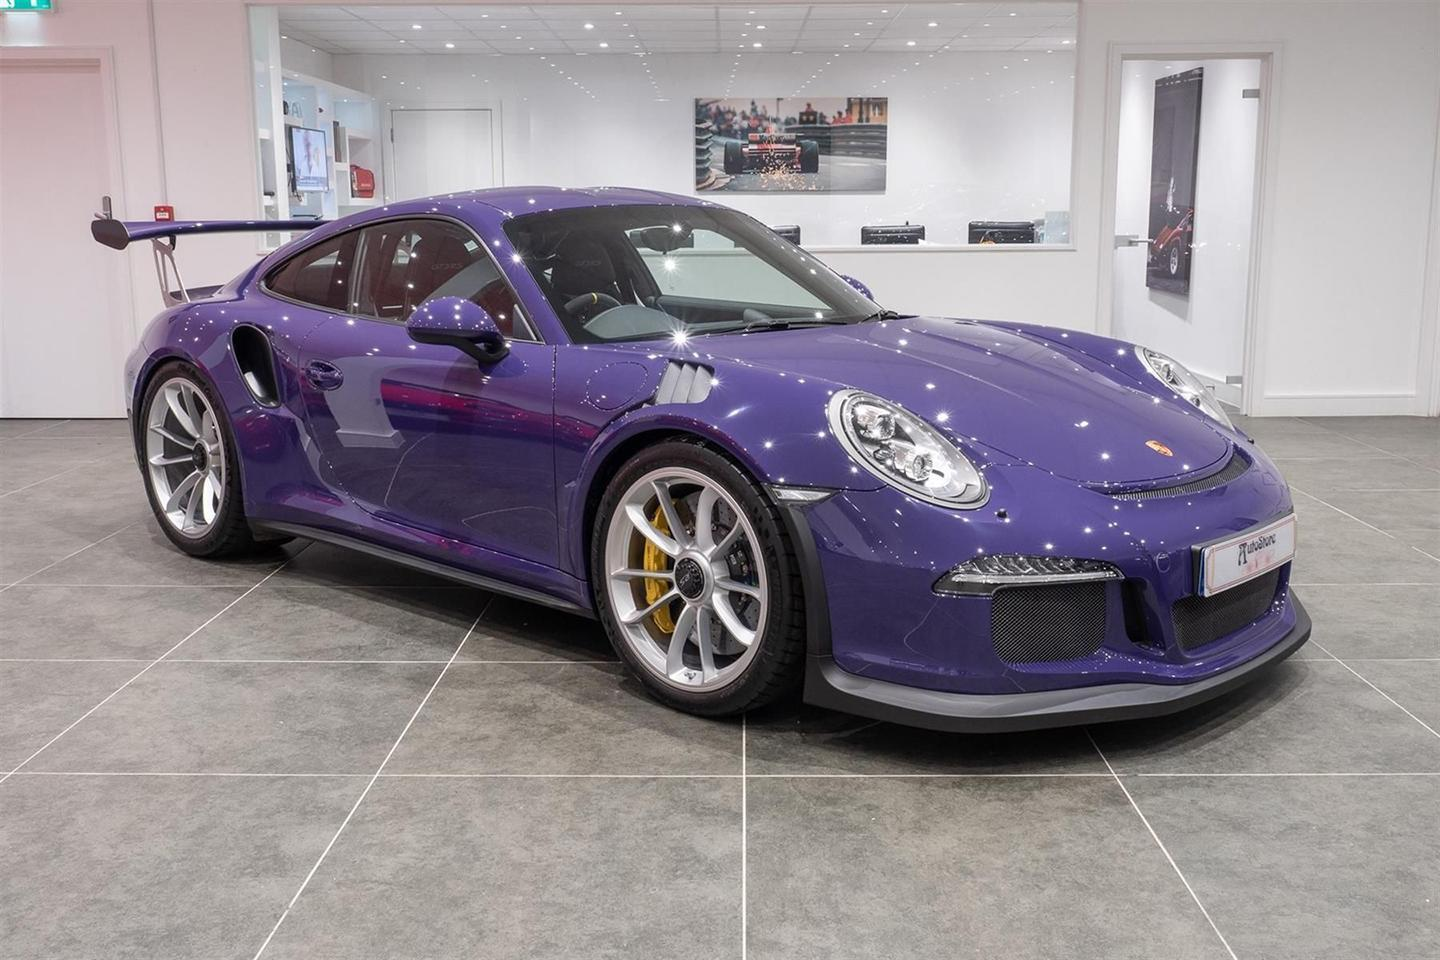 60 Mile Ultraviolet 911 Gt3 Rs For Sale Pistonheads Uk